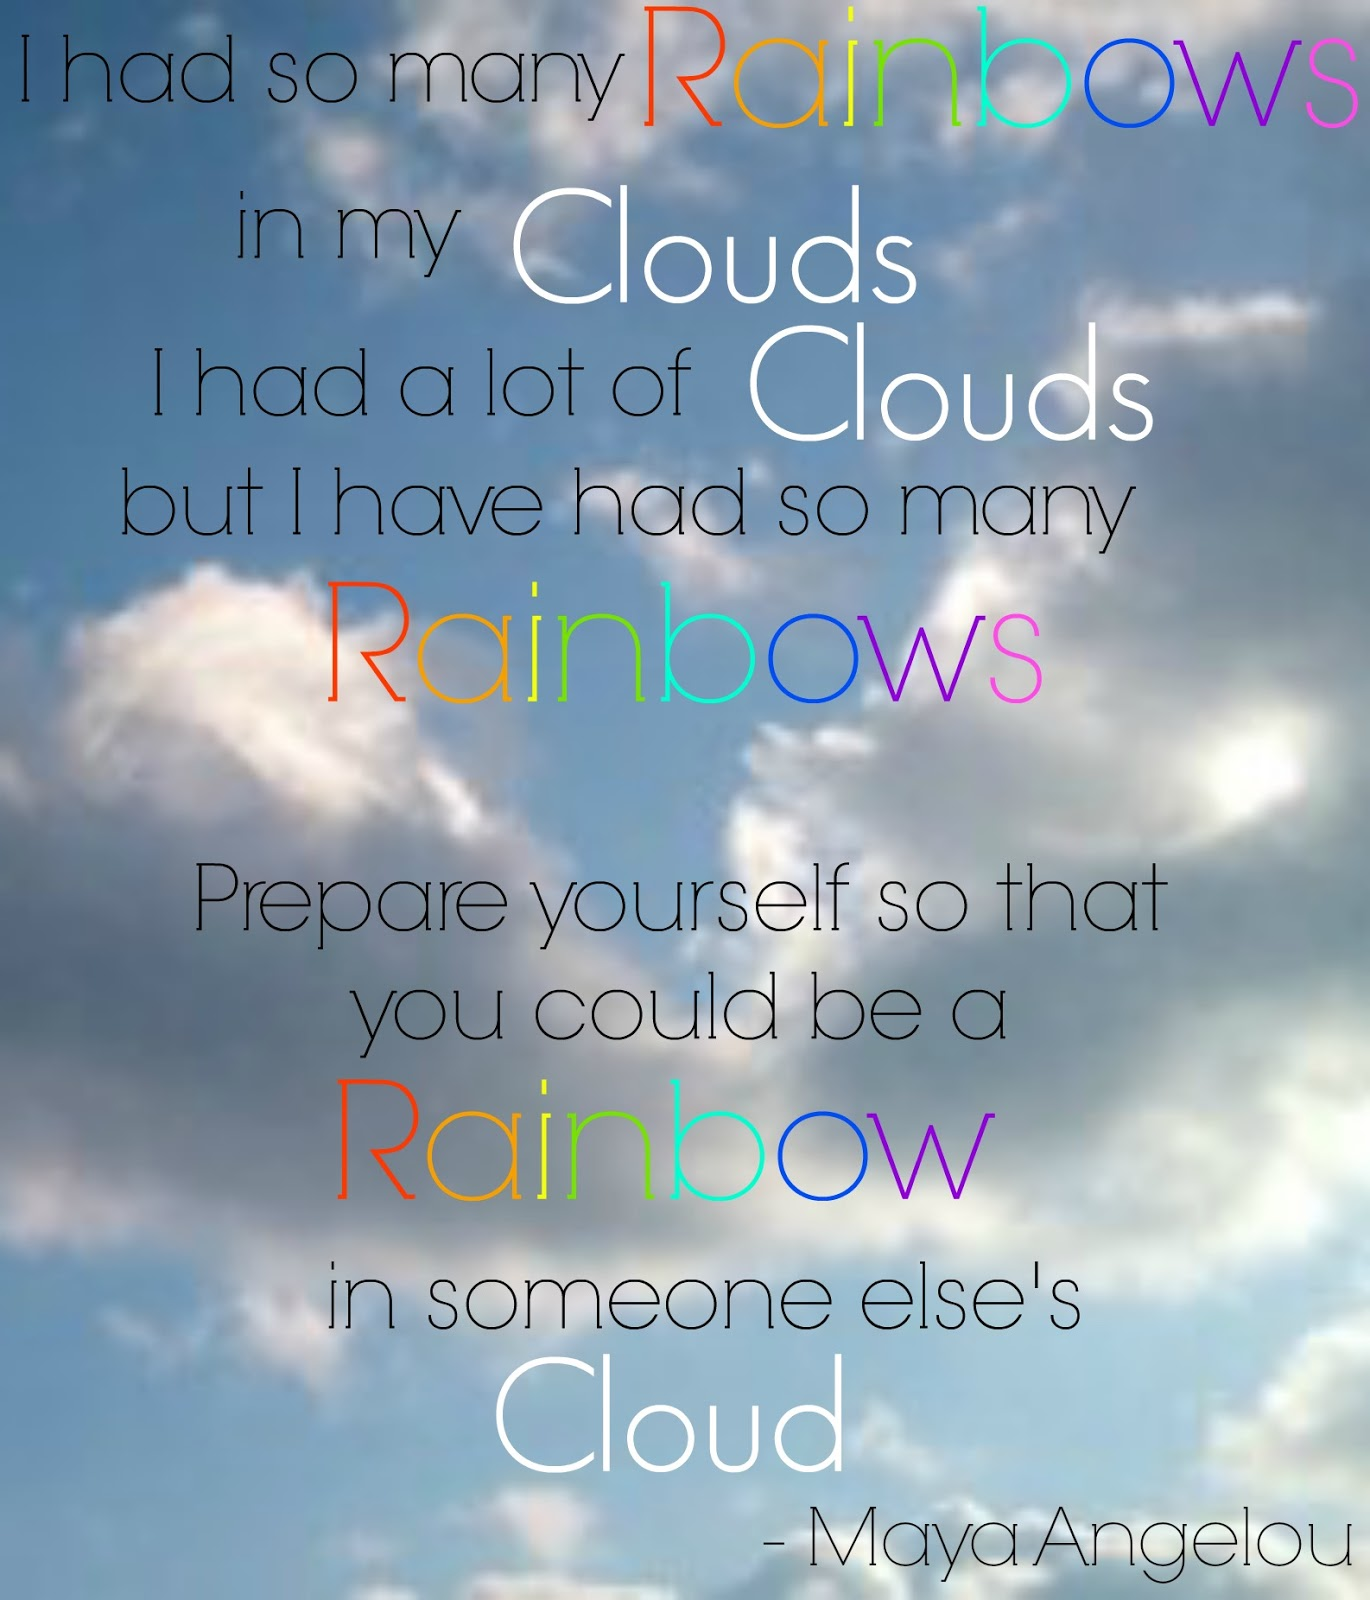 Cloud Quotes Enchanting Rainbow Quotes And Sayings  Suri's First Birthday  Pinterest . Design Ideas